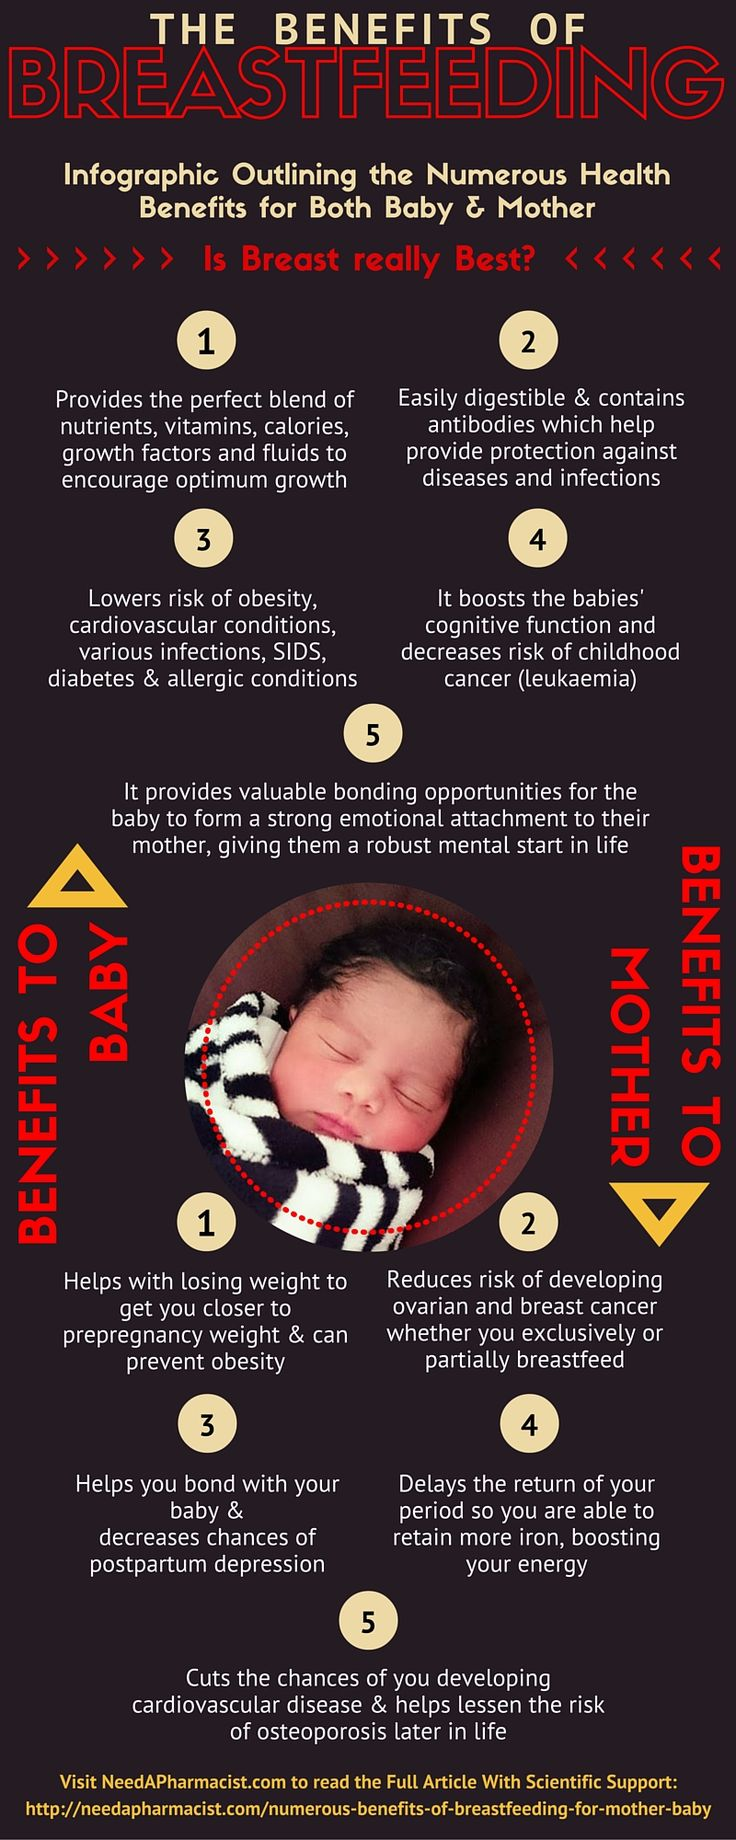 #Infographic outlining the numerous health benefits of #breastfeeding both for the mother and baby...